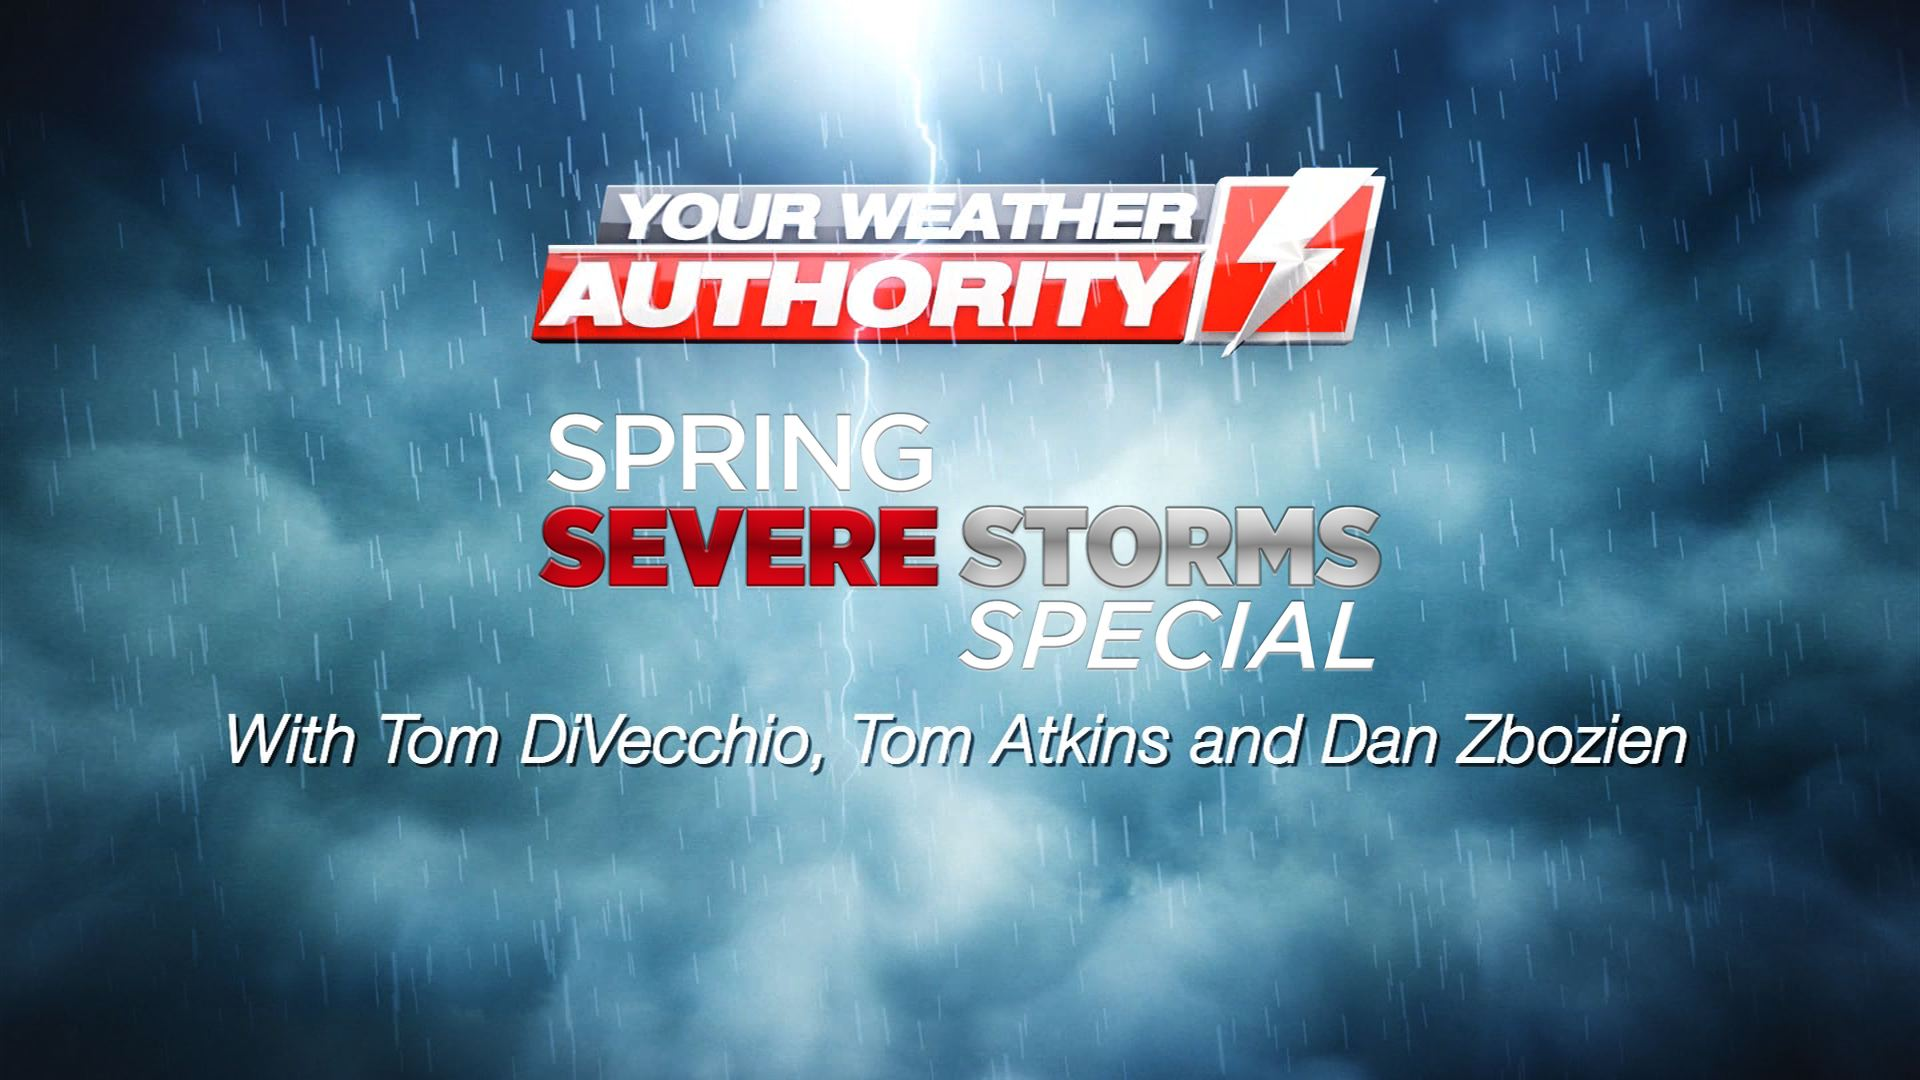 SEVERE WEATHER SHOW 011306;06_1461945149853.jpg